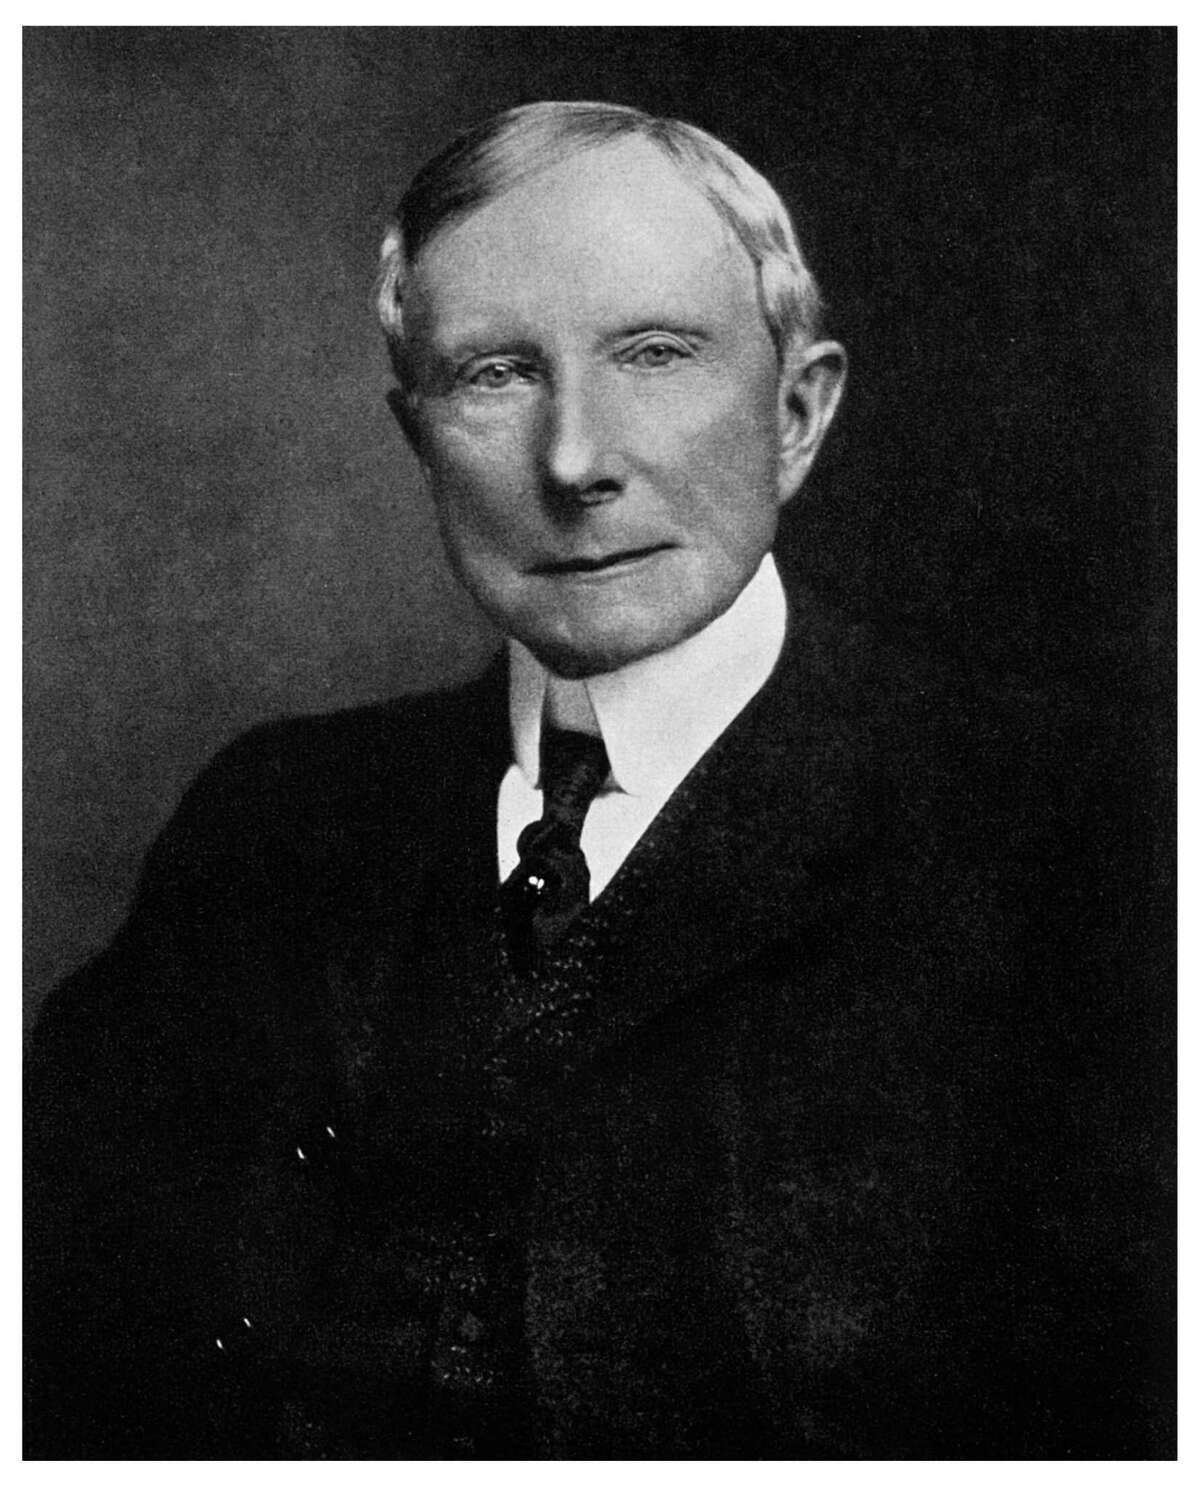 The richest person of all time from each state John D RockefellerWorth: $257.25 billionState: New YorkIndustry: Oil